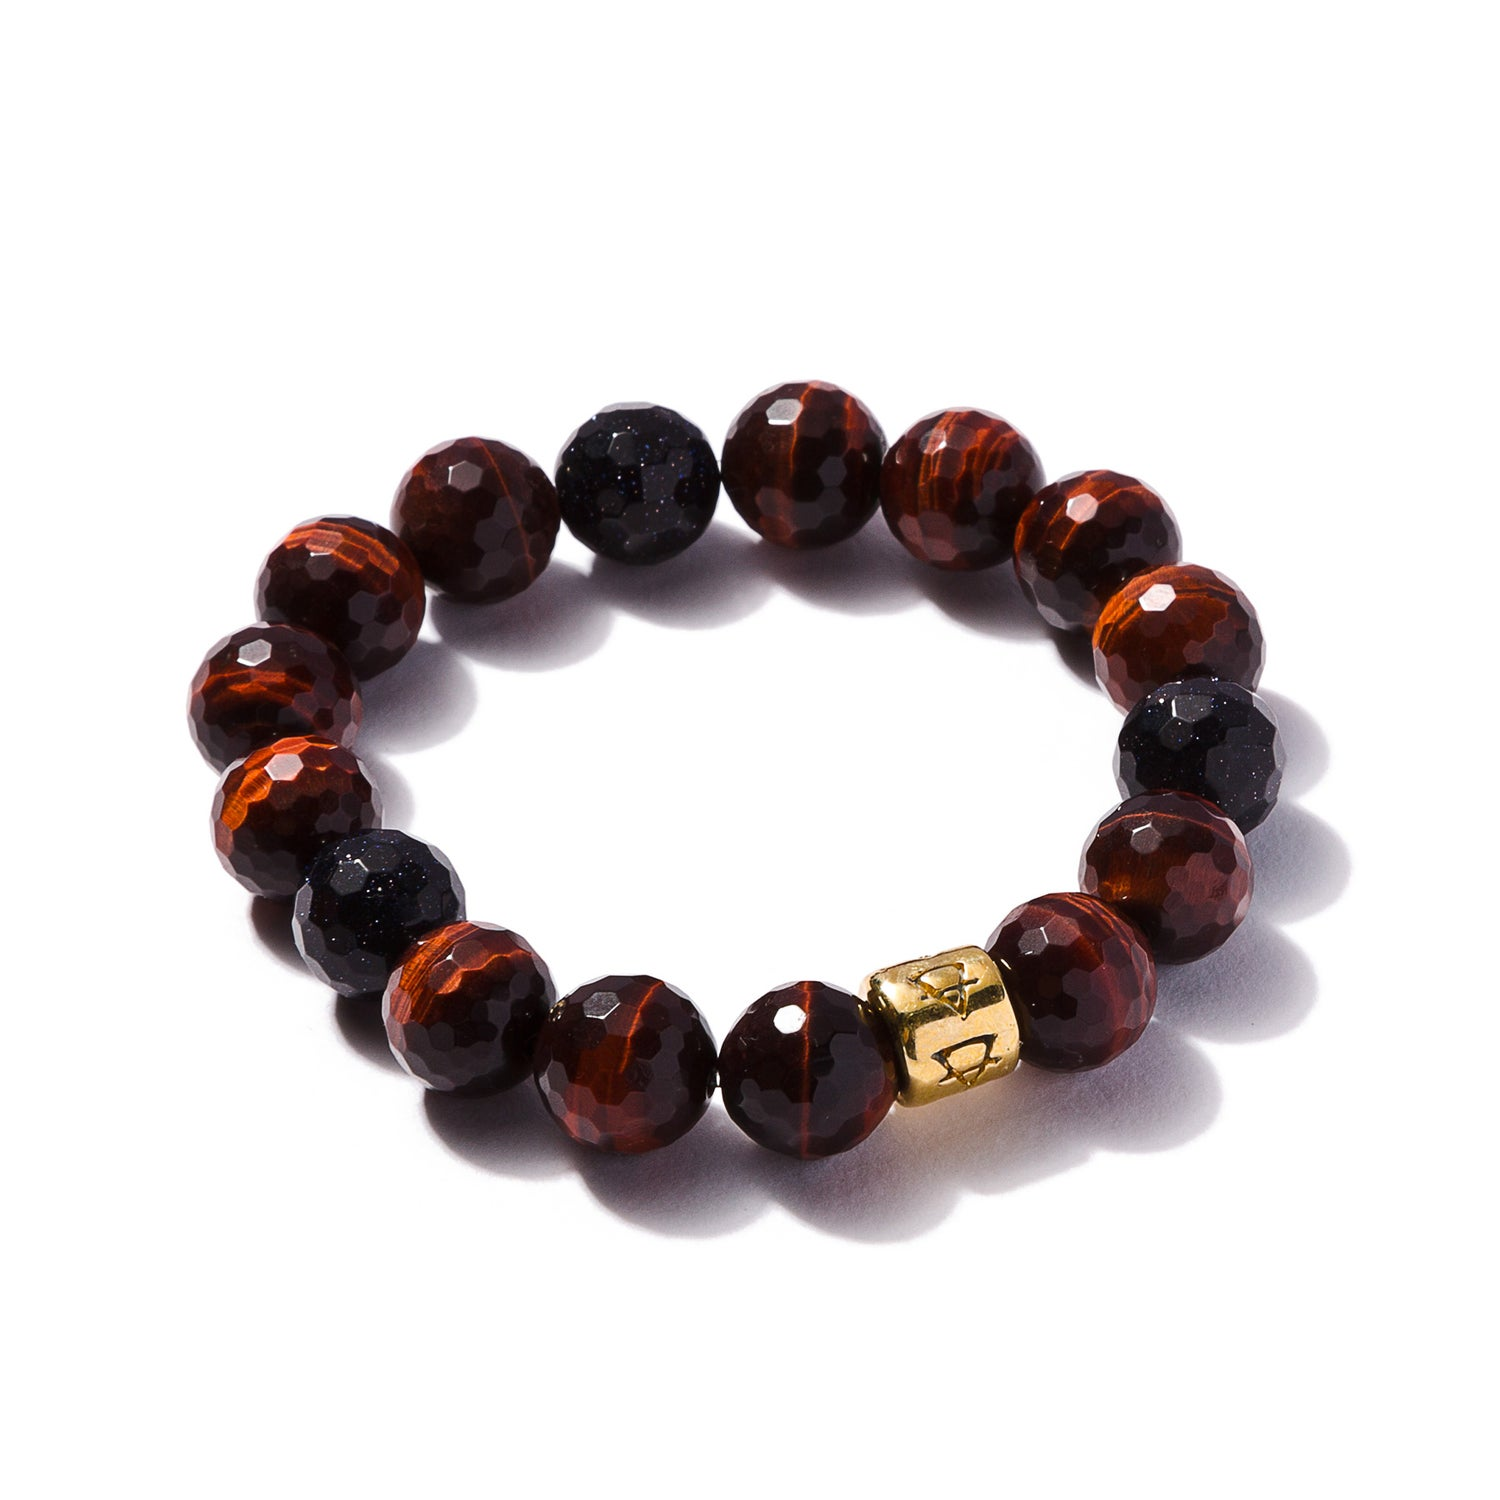 Image of Red Tigers Eye with Moon Stones